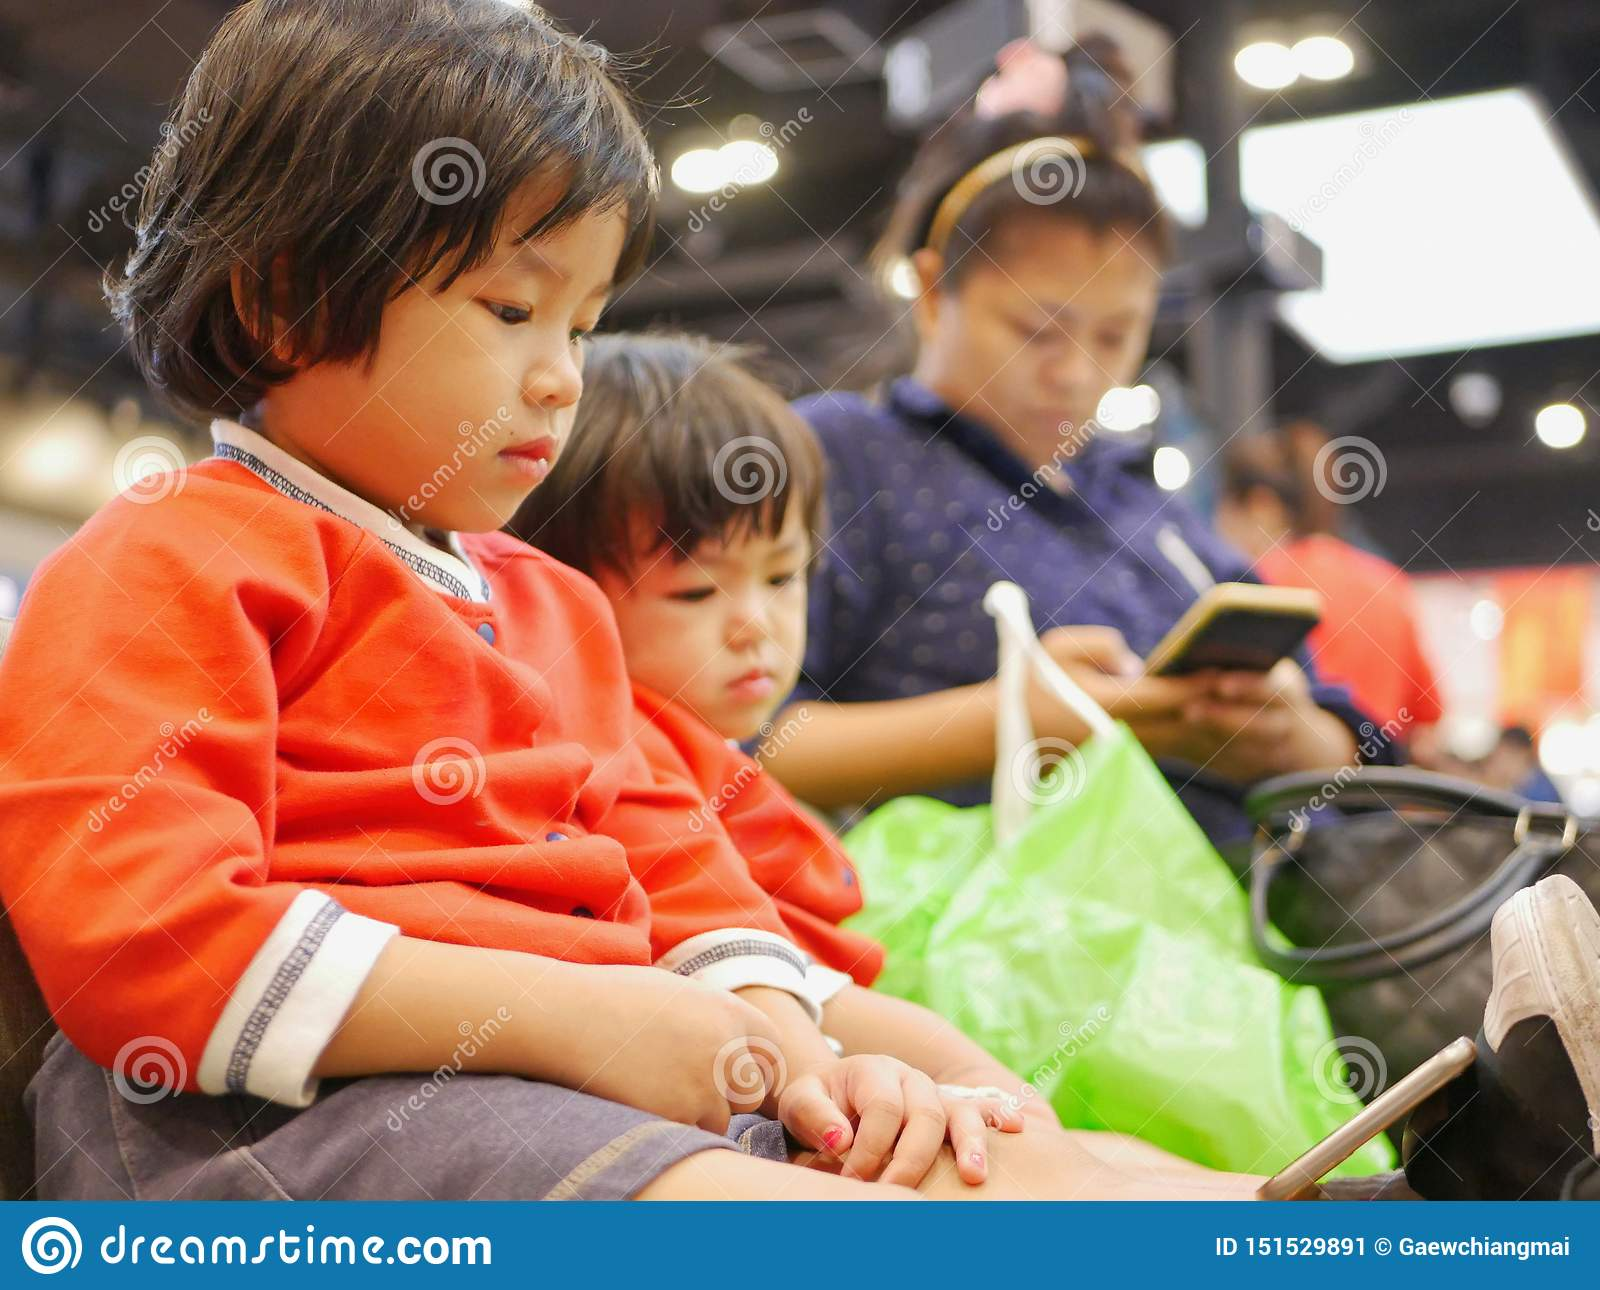 Little Asian baby girl, together with her younger sister, watching a smartphone, same as her mom, sitting and waiting for a queue